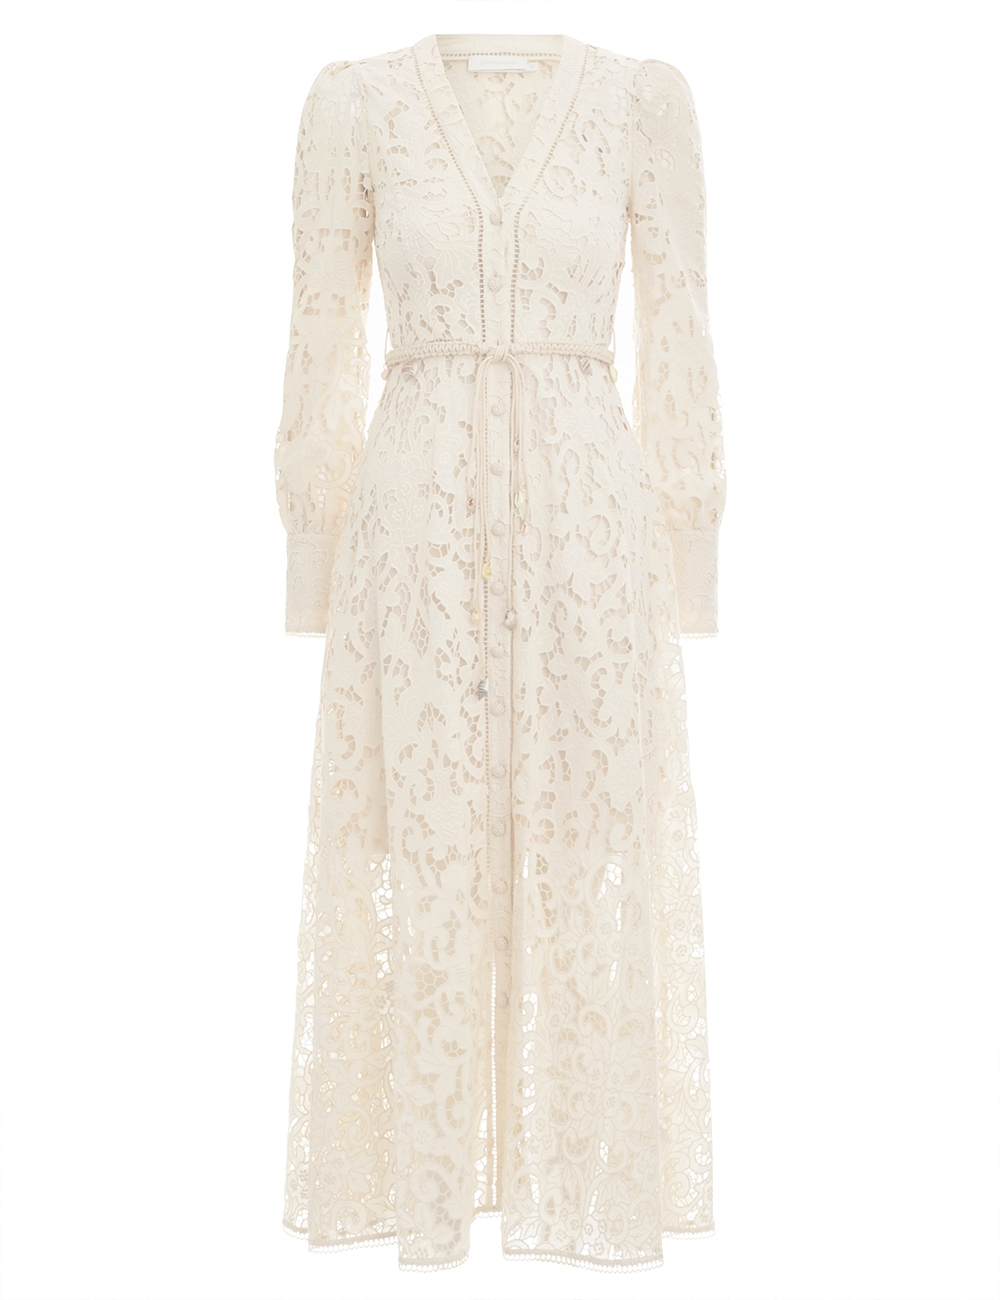 Freja Broderie Button Up Dress